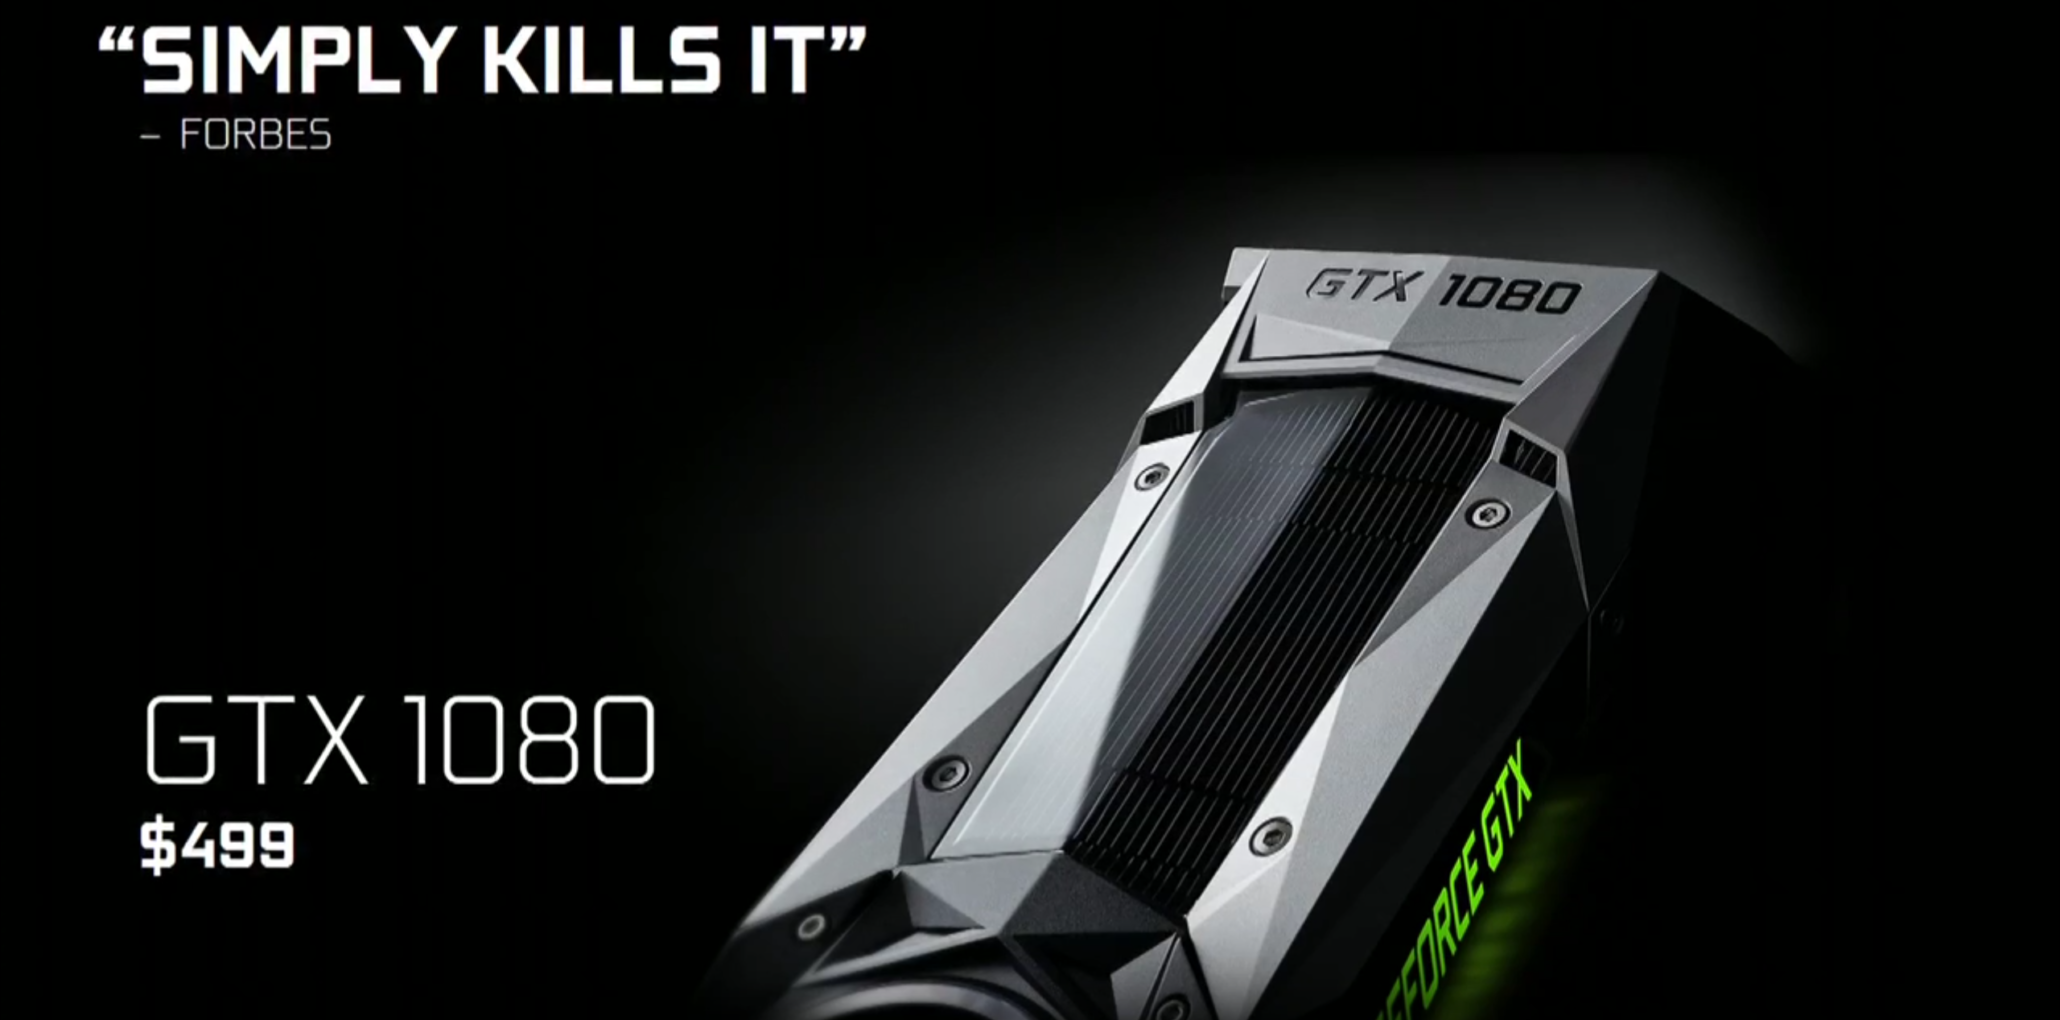 NVIDIA GeForce GTX 1080 and GTX 1070 Price Cuts and Best Deals